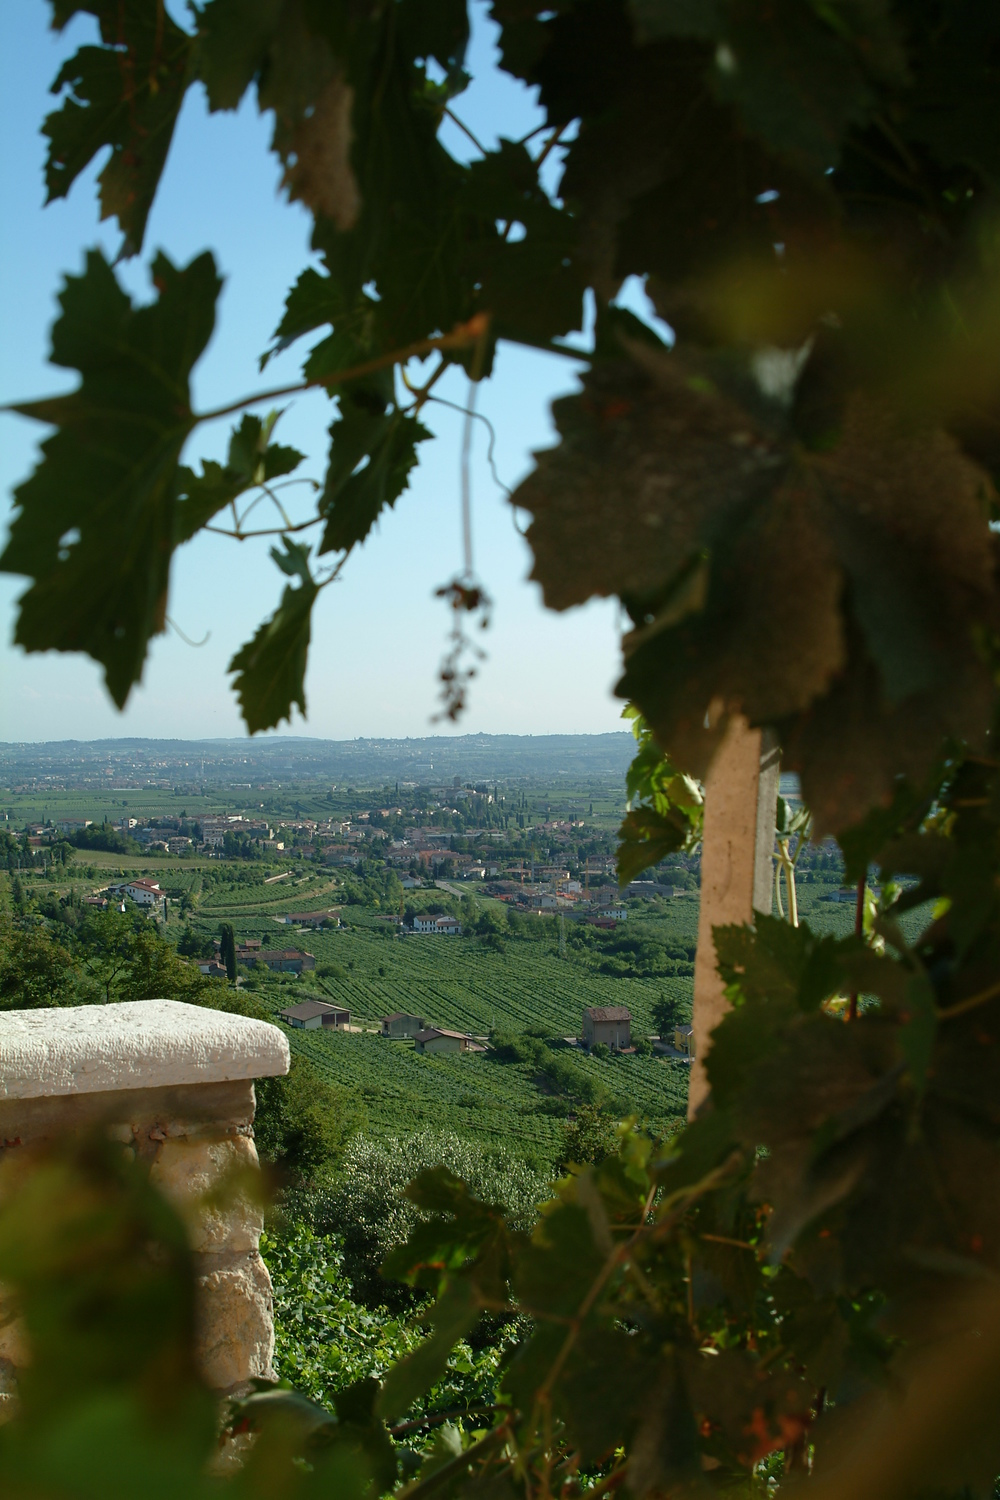 View from the top of Sant Urban vineyard where Speri's Amarone comes from.